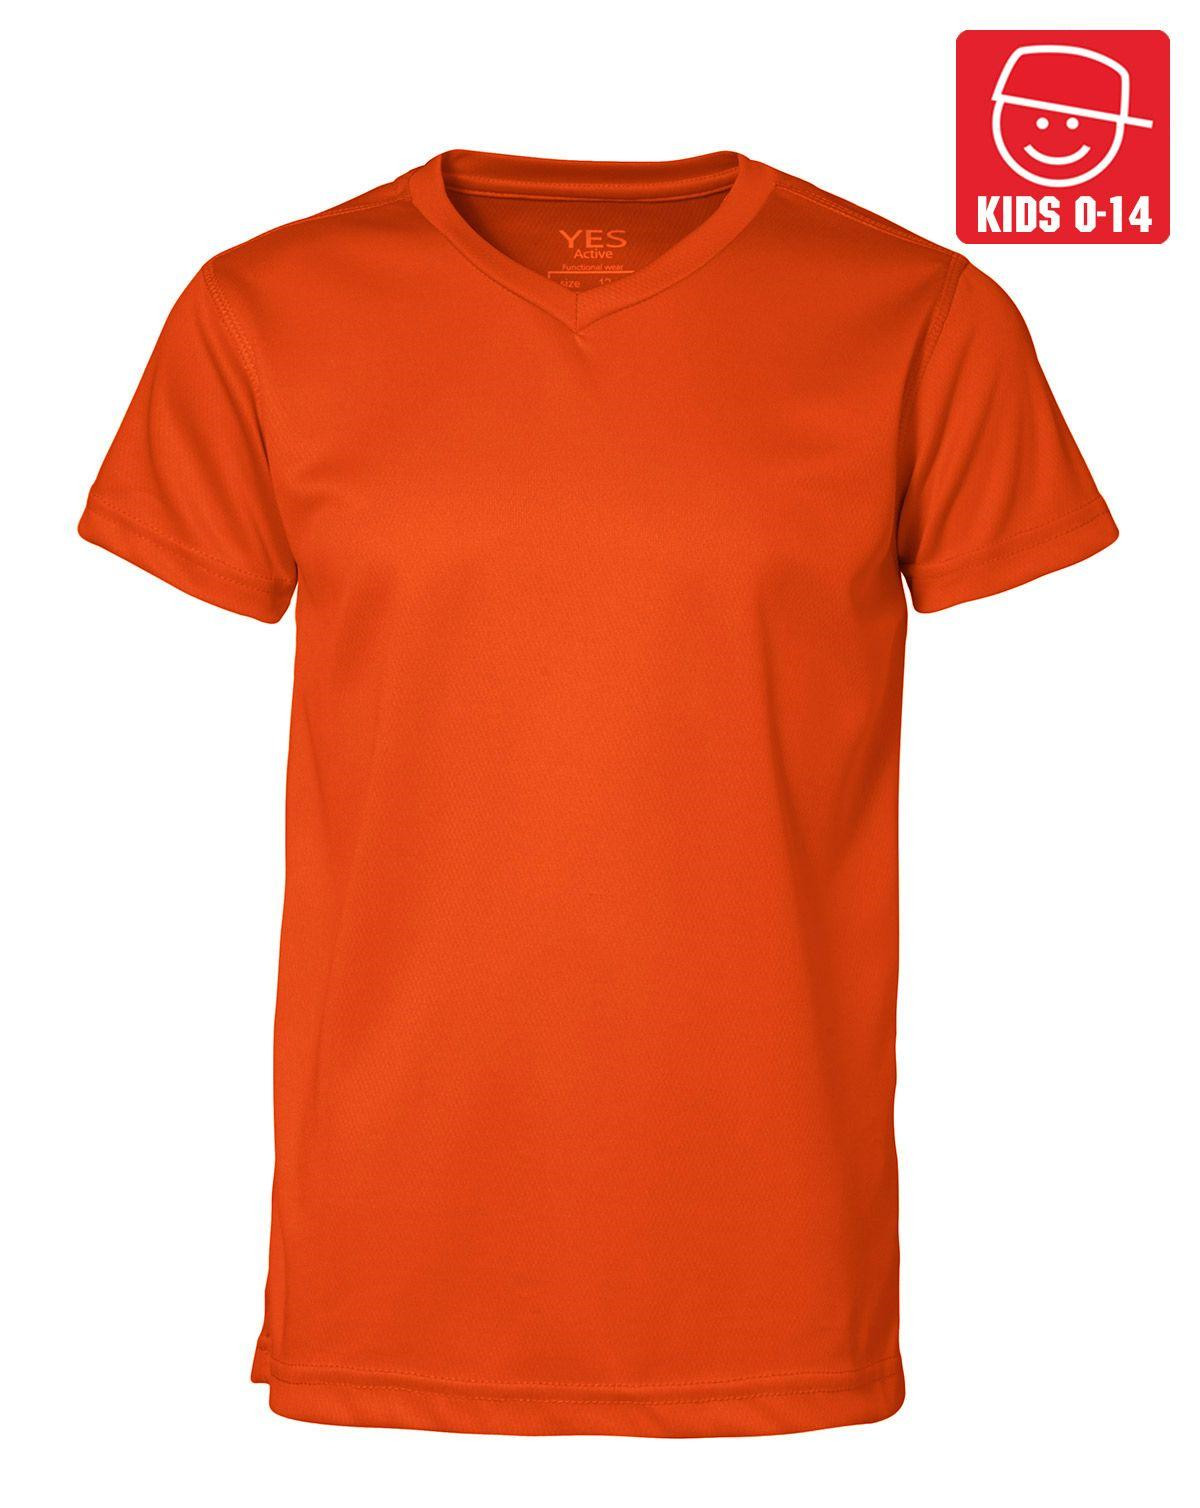 Image of   ID YES Svedtransporterende T-shirt til Børn (Orange, 158)